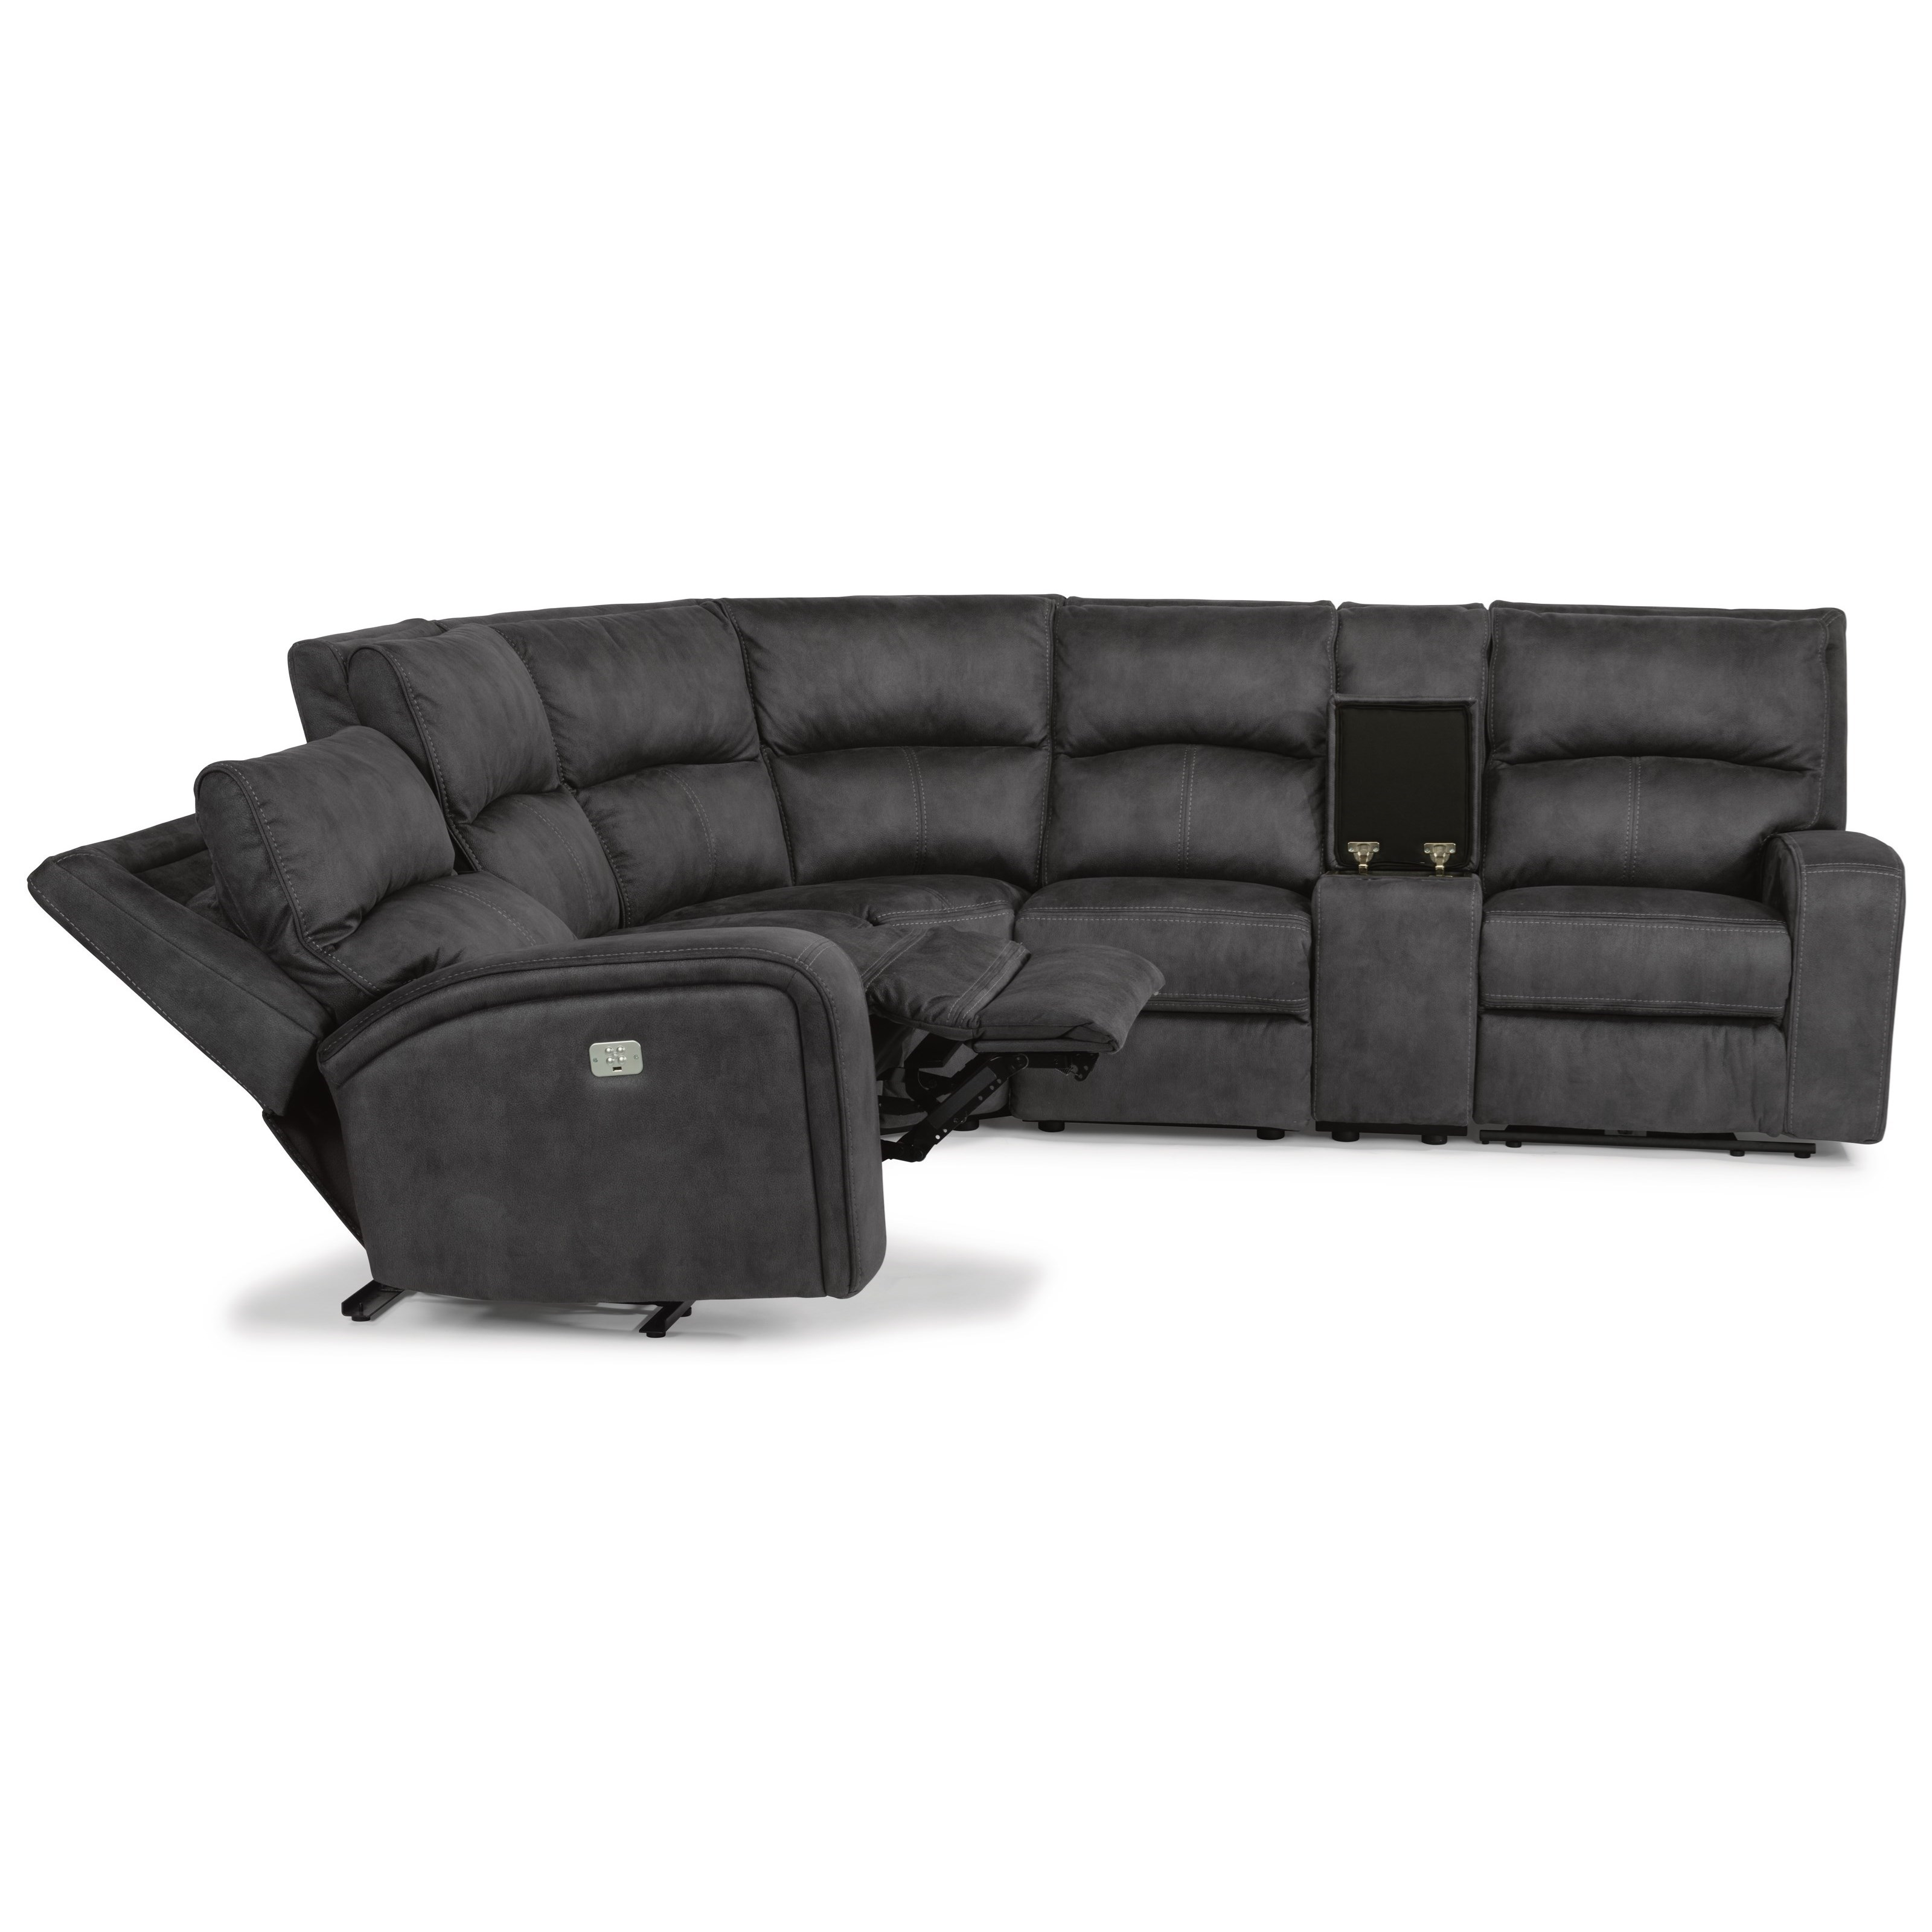 Latitudes - Nirvana Power Reclining L-Shaped Sectional by Flexsteel at Walker's Furniture